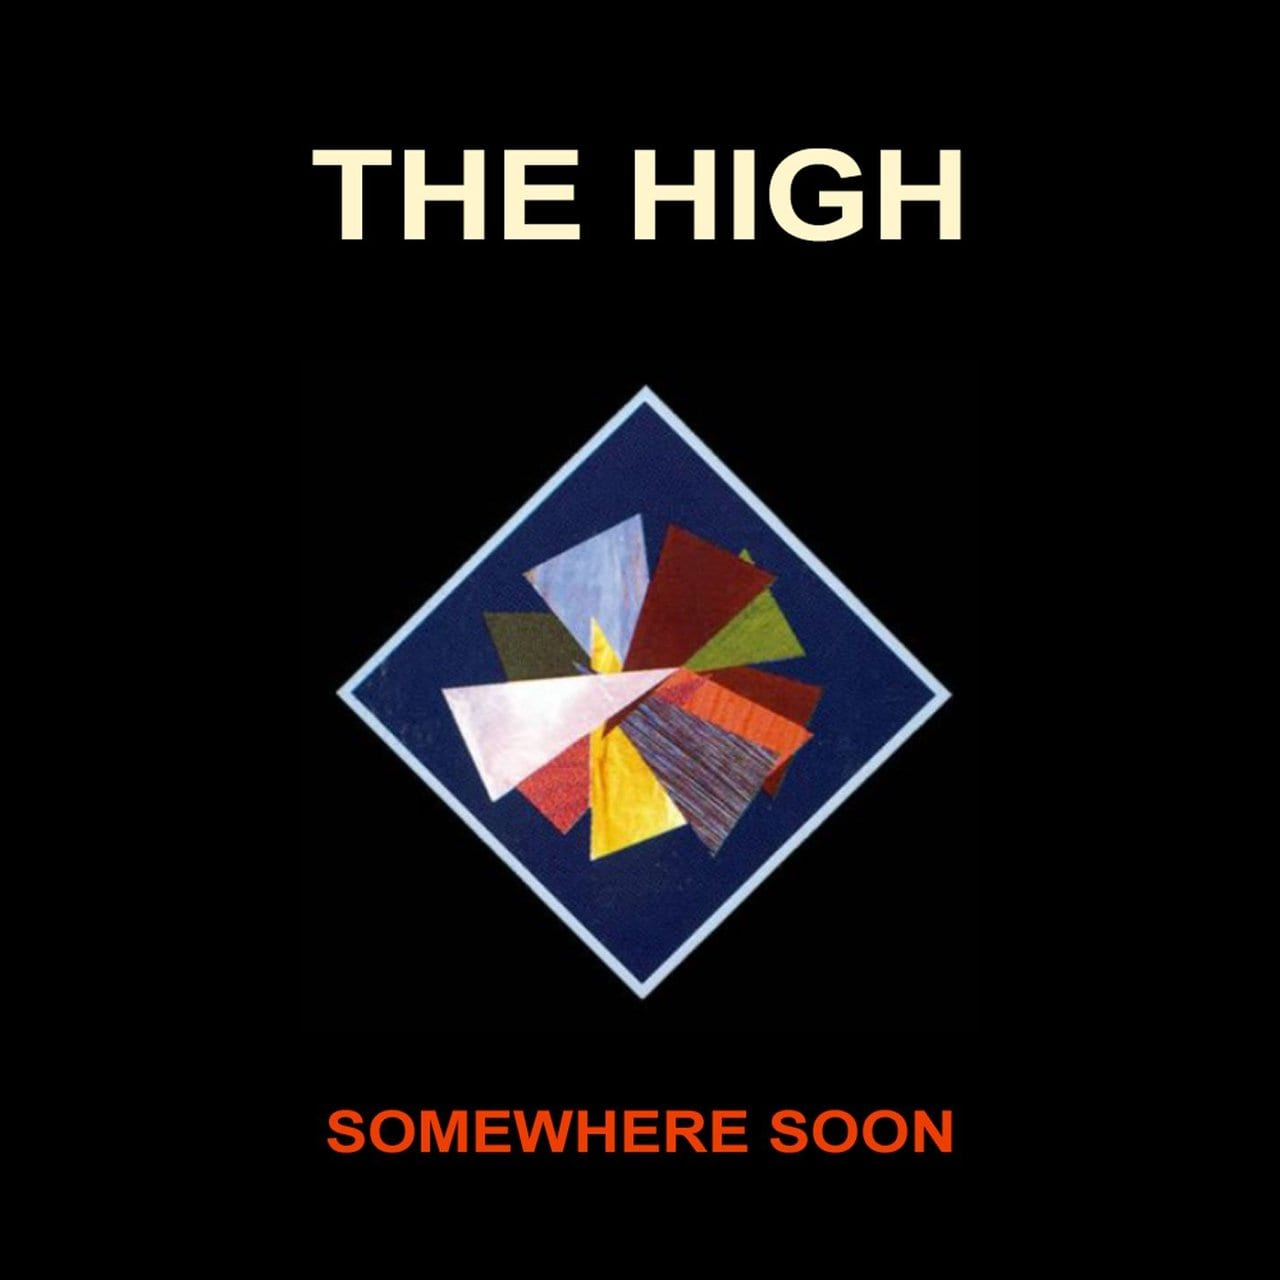 the high somewhere soon album cover